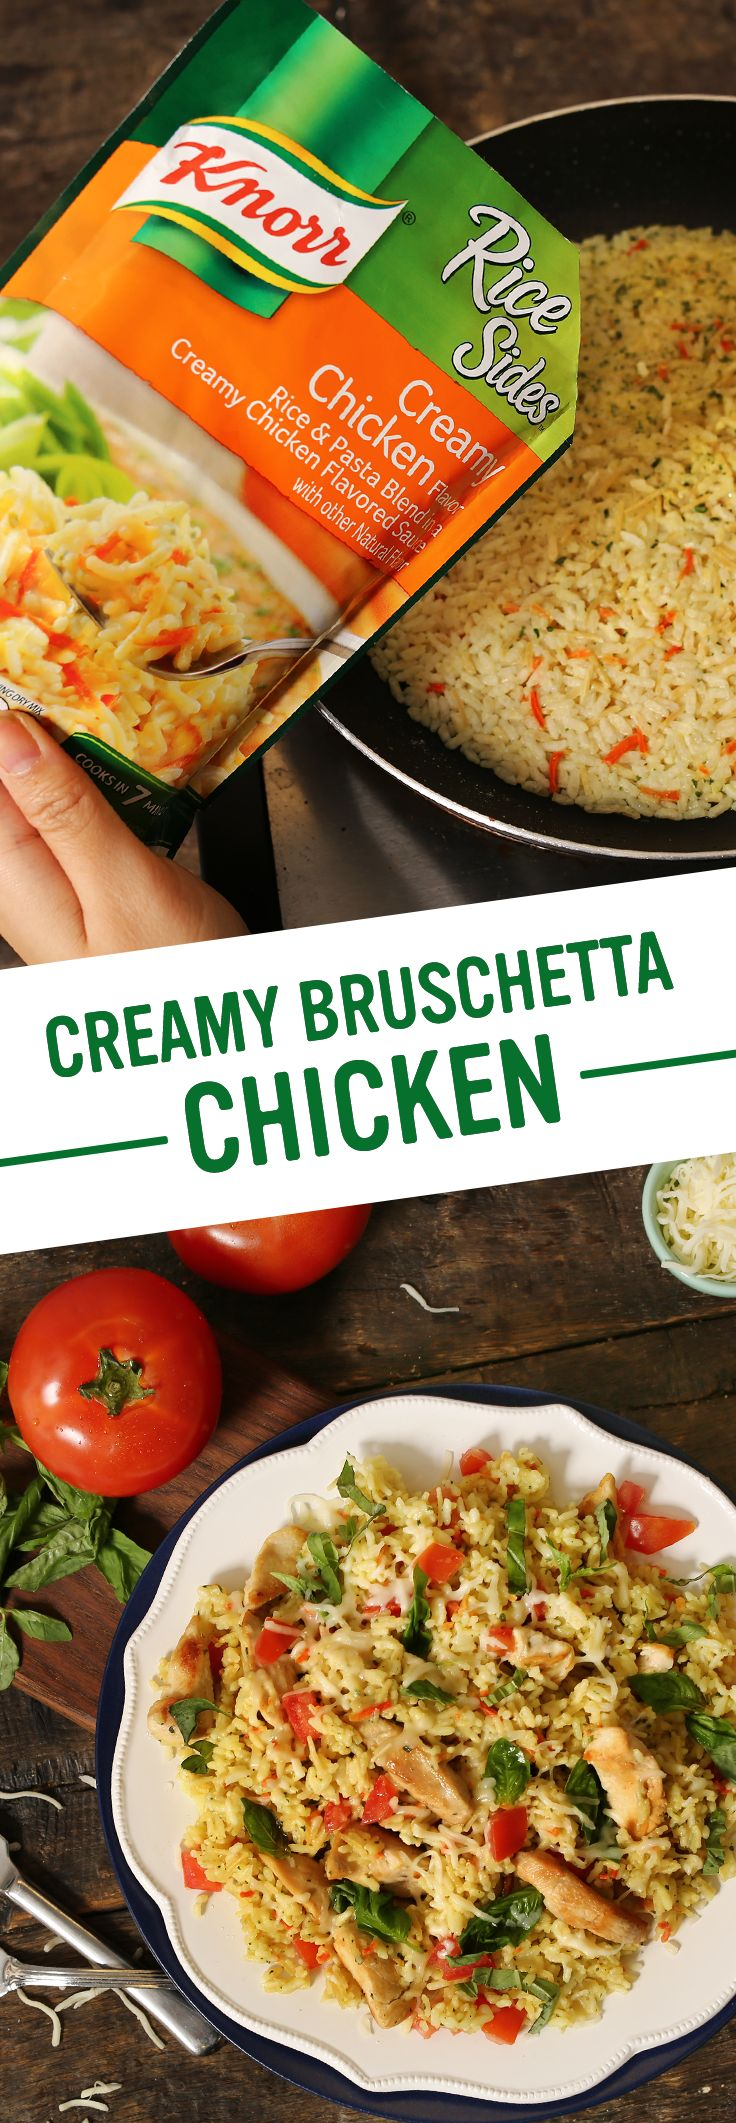 172 best weeknight dinner recipes images on pinterest cooking looking for a quick and easy dinner recipe your family will love knorrs creamy bruschetta forumfinder Choice Image